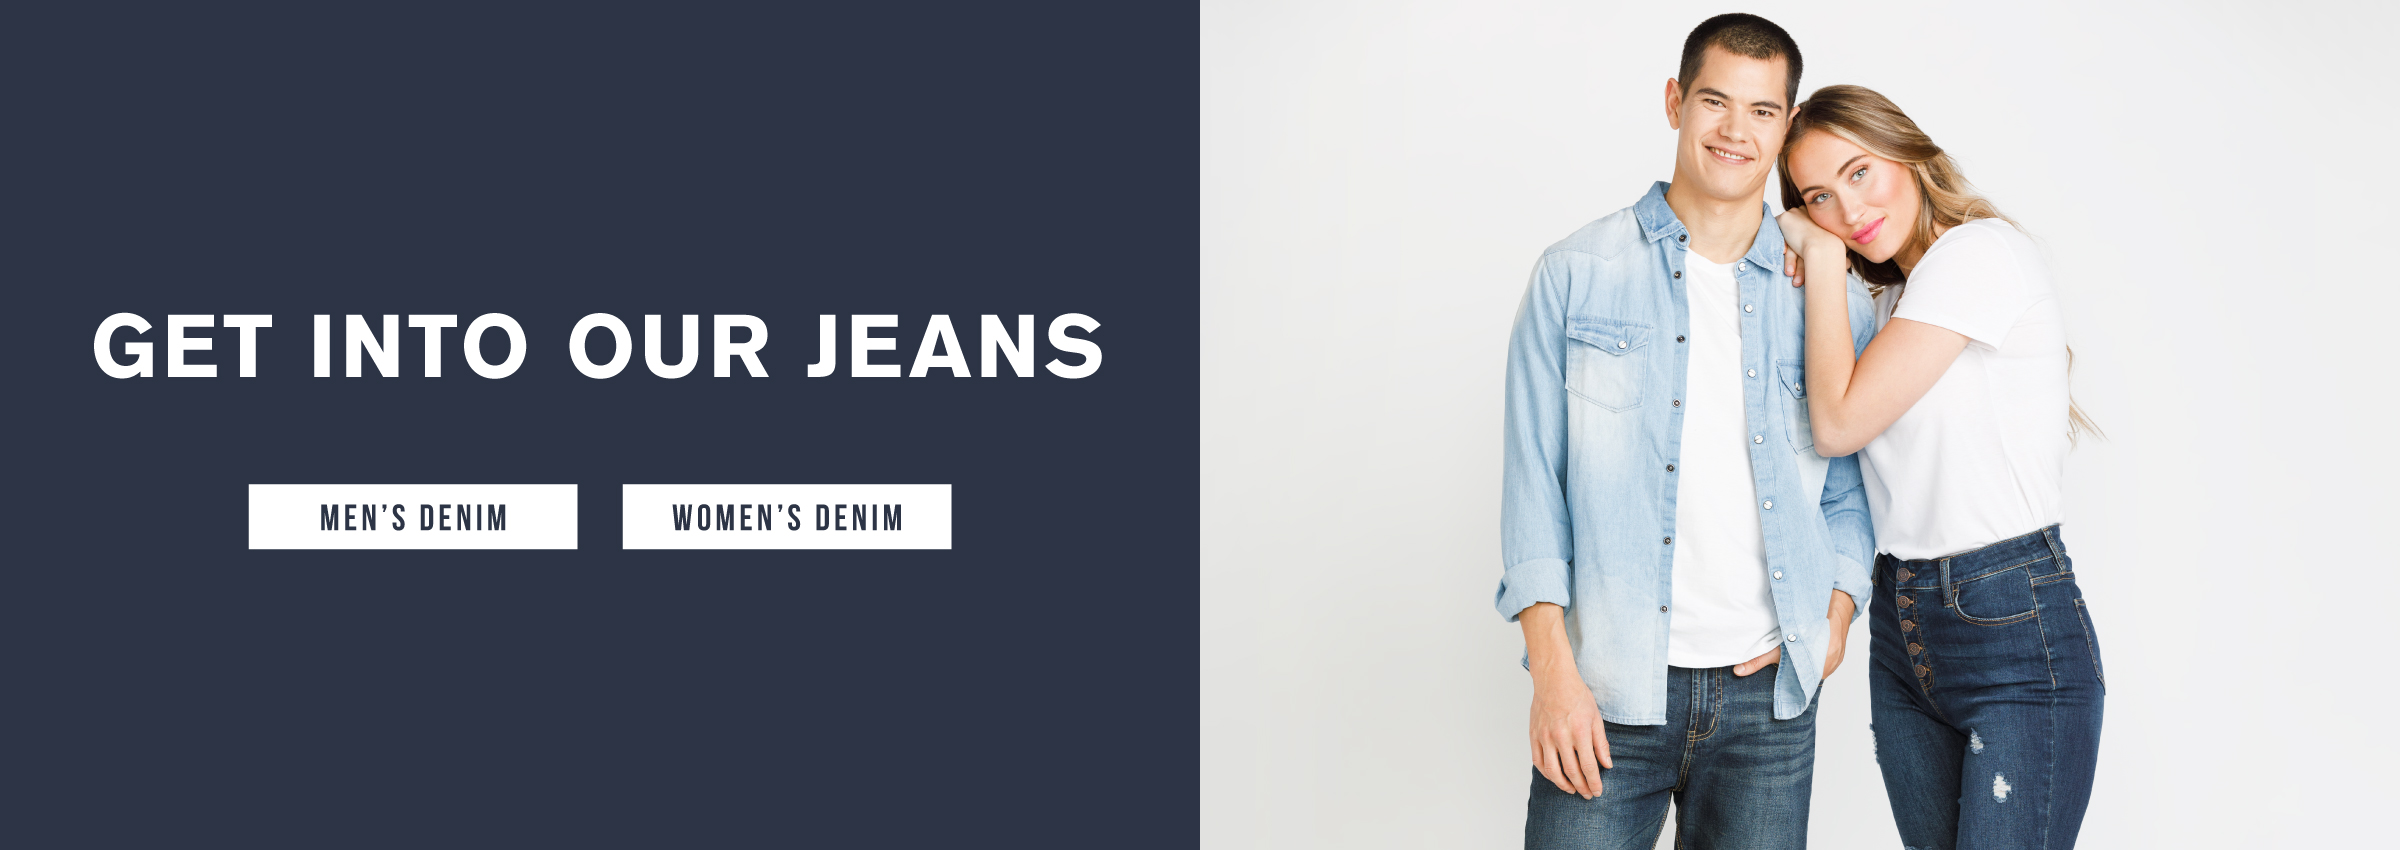 Get into our jeans. Men's denim. Women's denim.